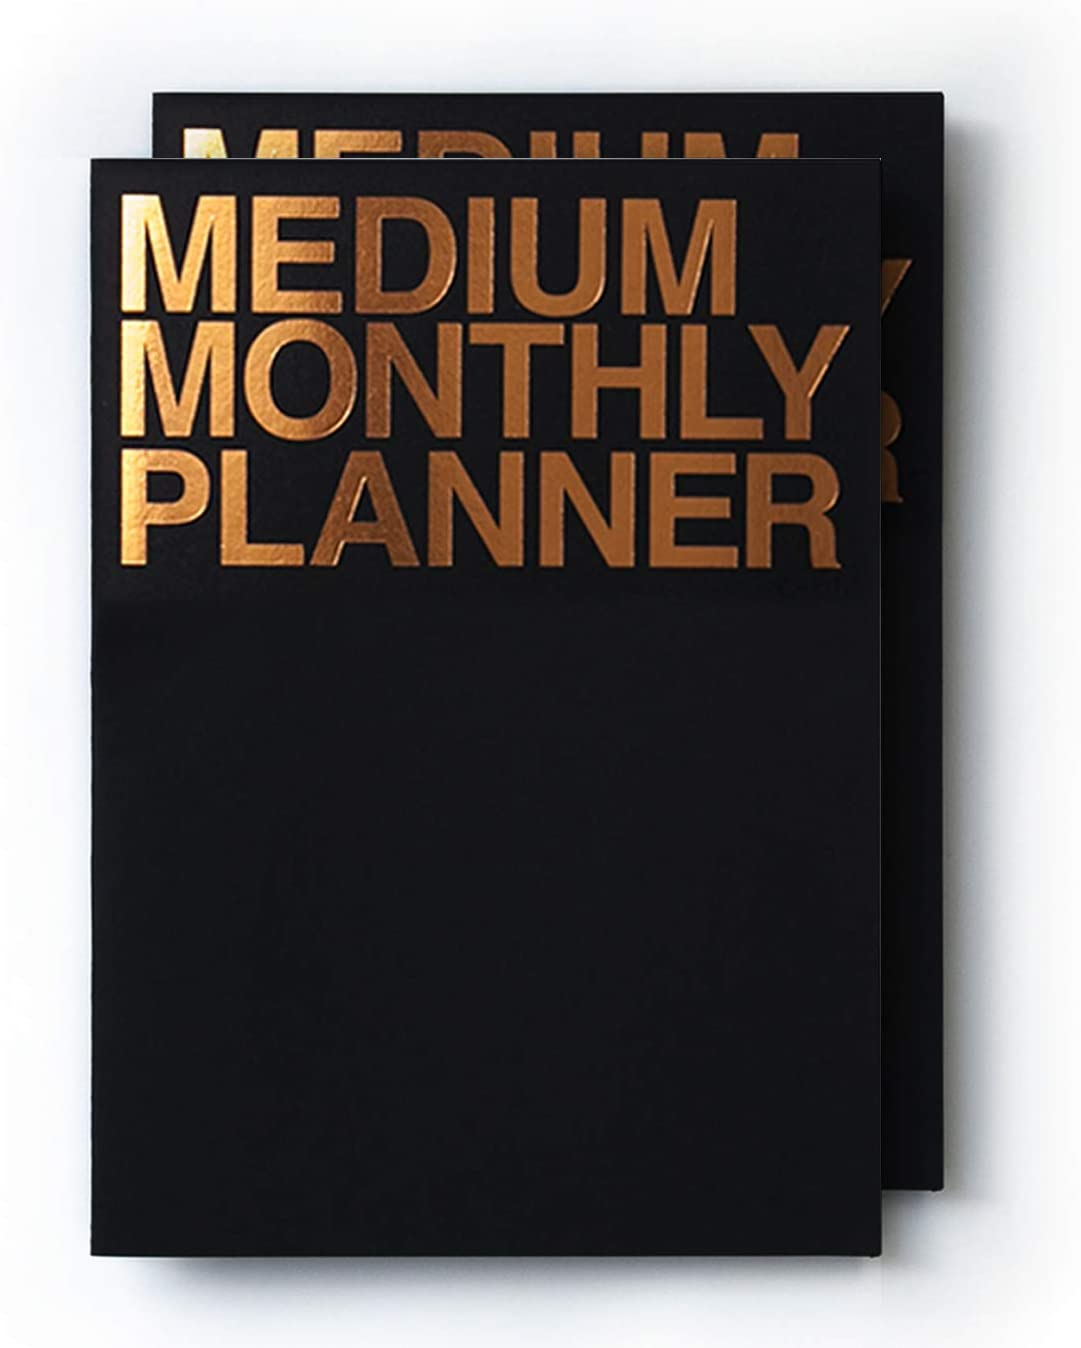 JSTORY Medium Monthly Planner Lays Flat Undated Year Round Flexible Cover 14 Sheets x 2 Black Gold